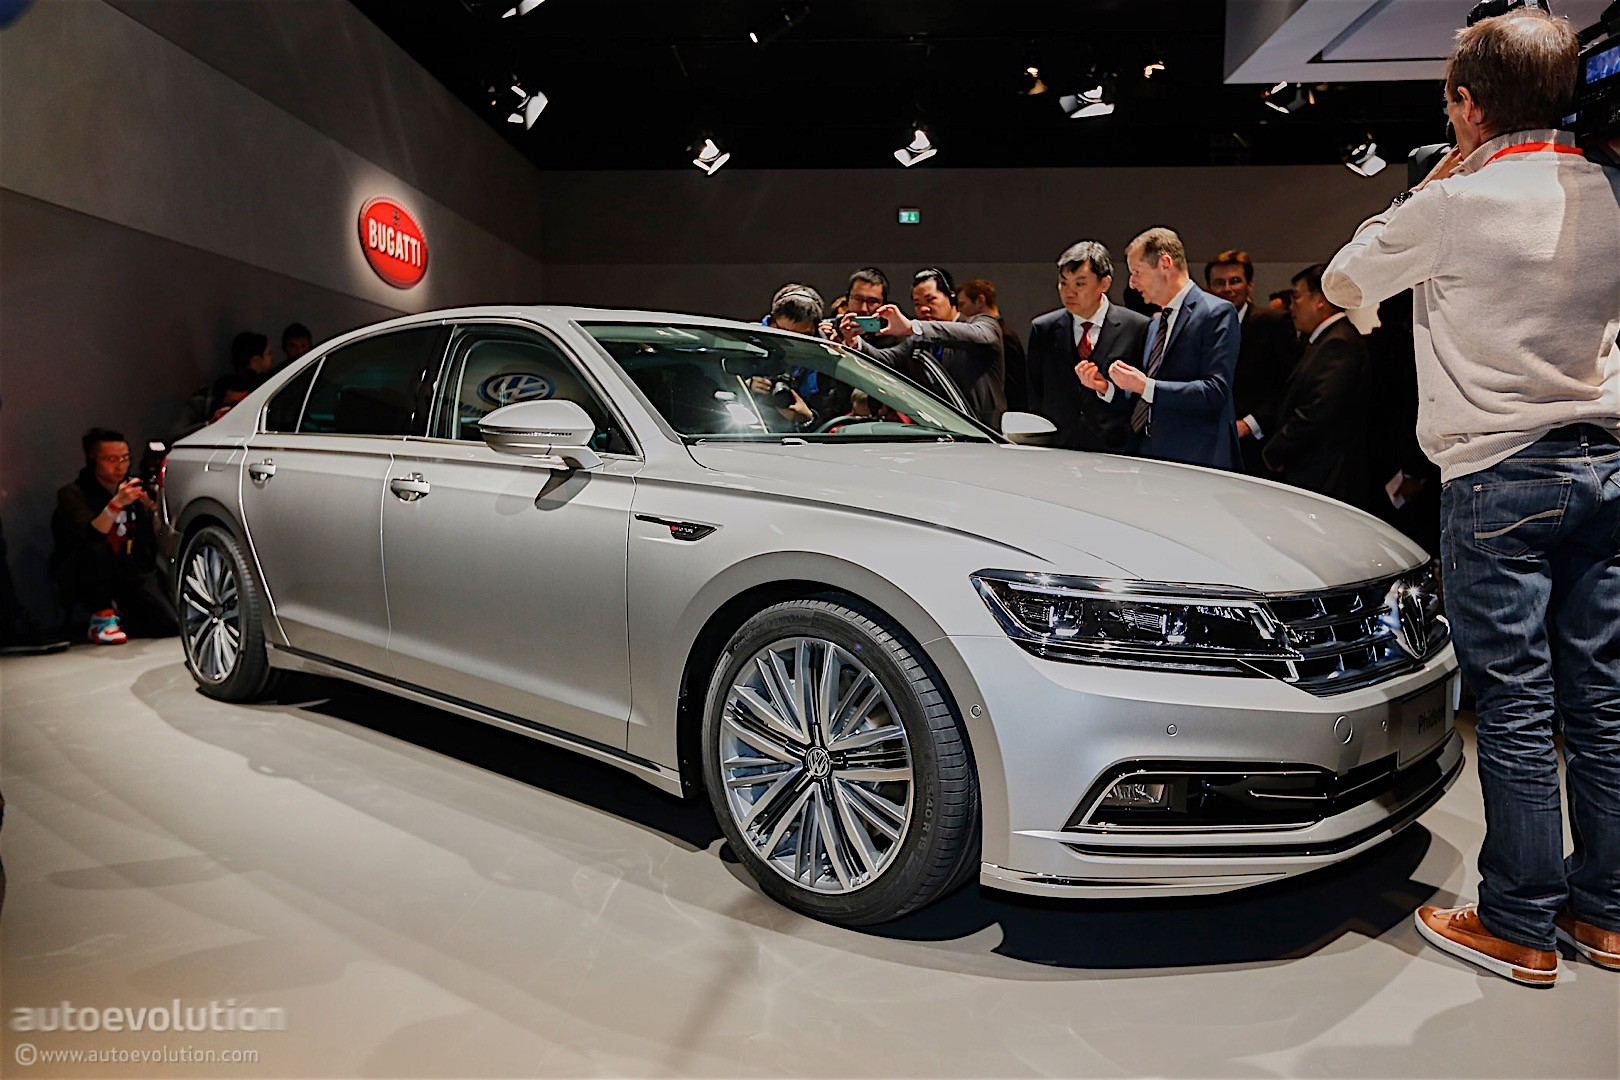 2016 volkswagen phideon revealed to europeans will be sold in china autoevolution. Black Bedroom Furniture Sets. Home Design Ideas